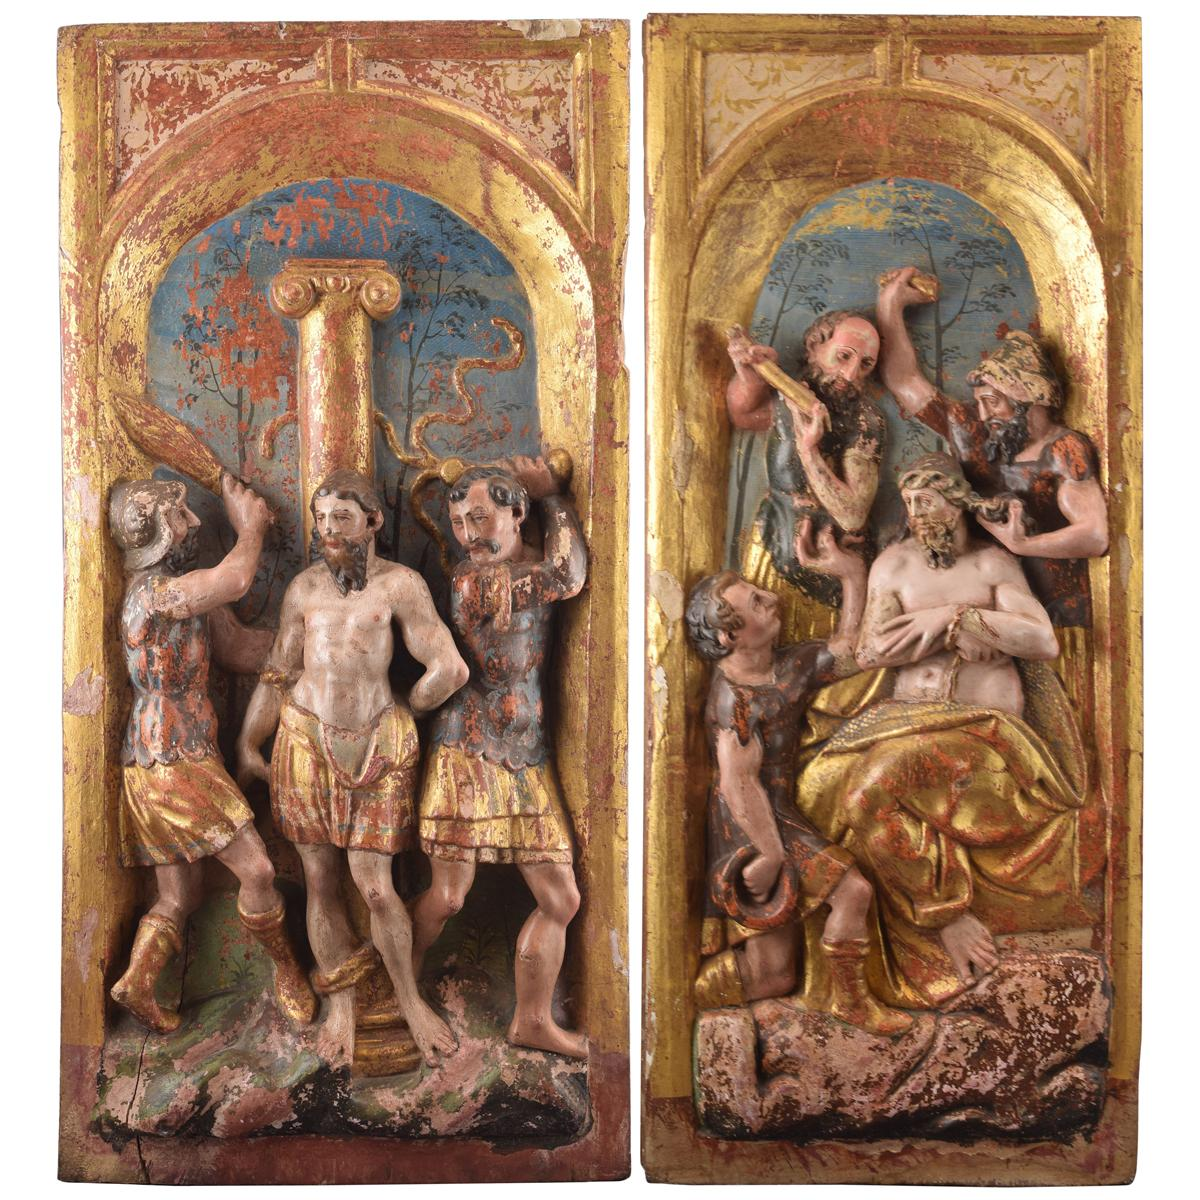 Pair of Reliefs, Polychromed and Giltwood, Castilian School, Spain, 16th Century